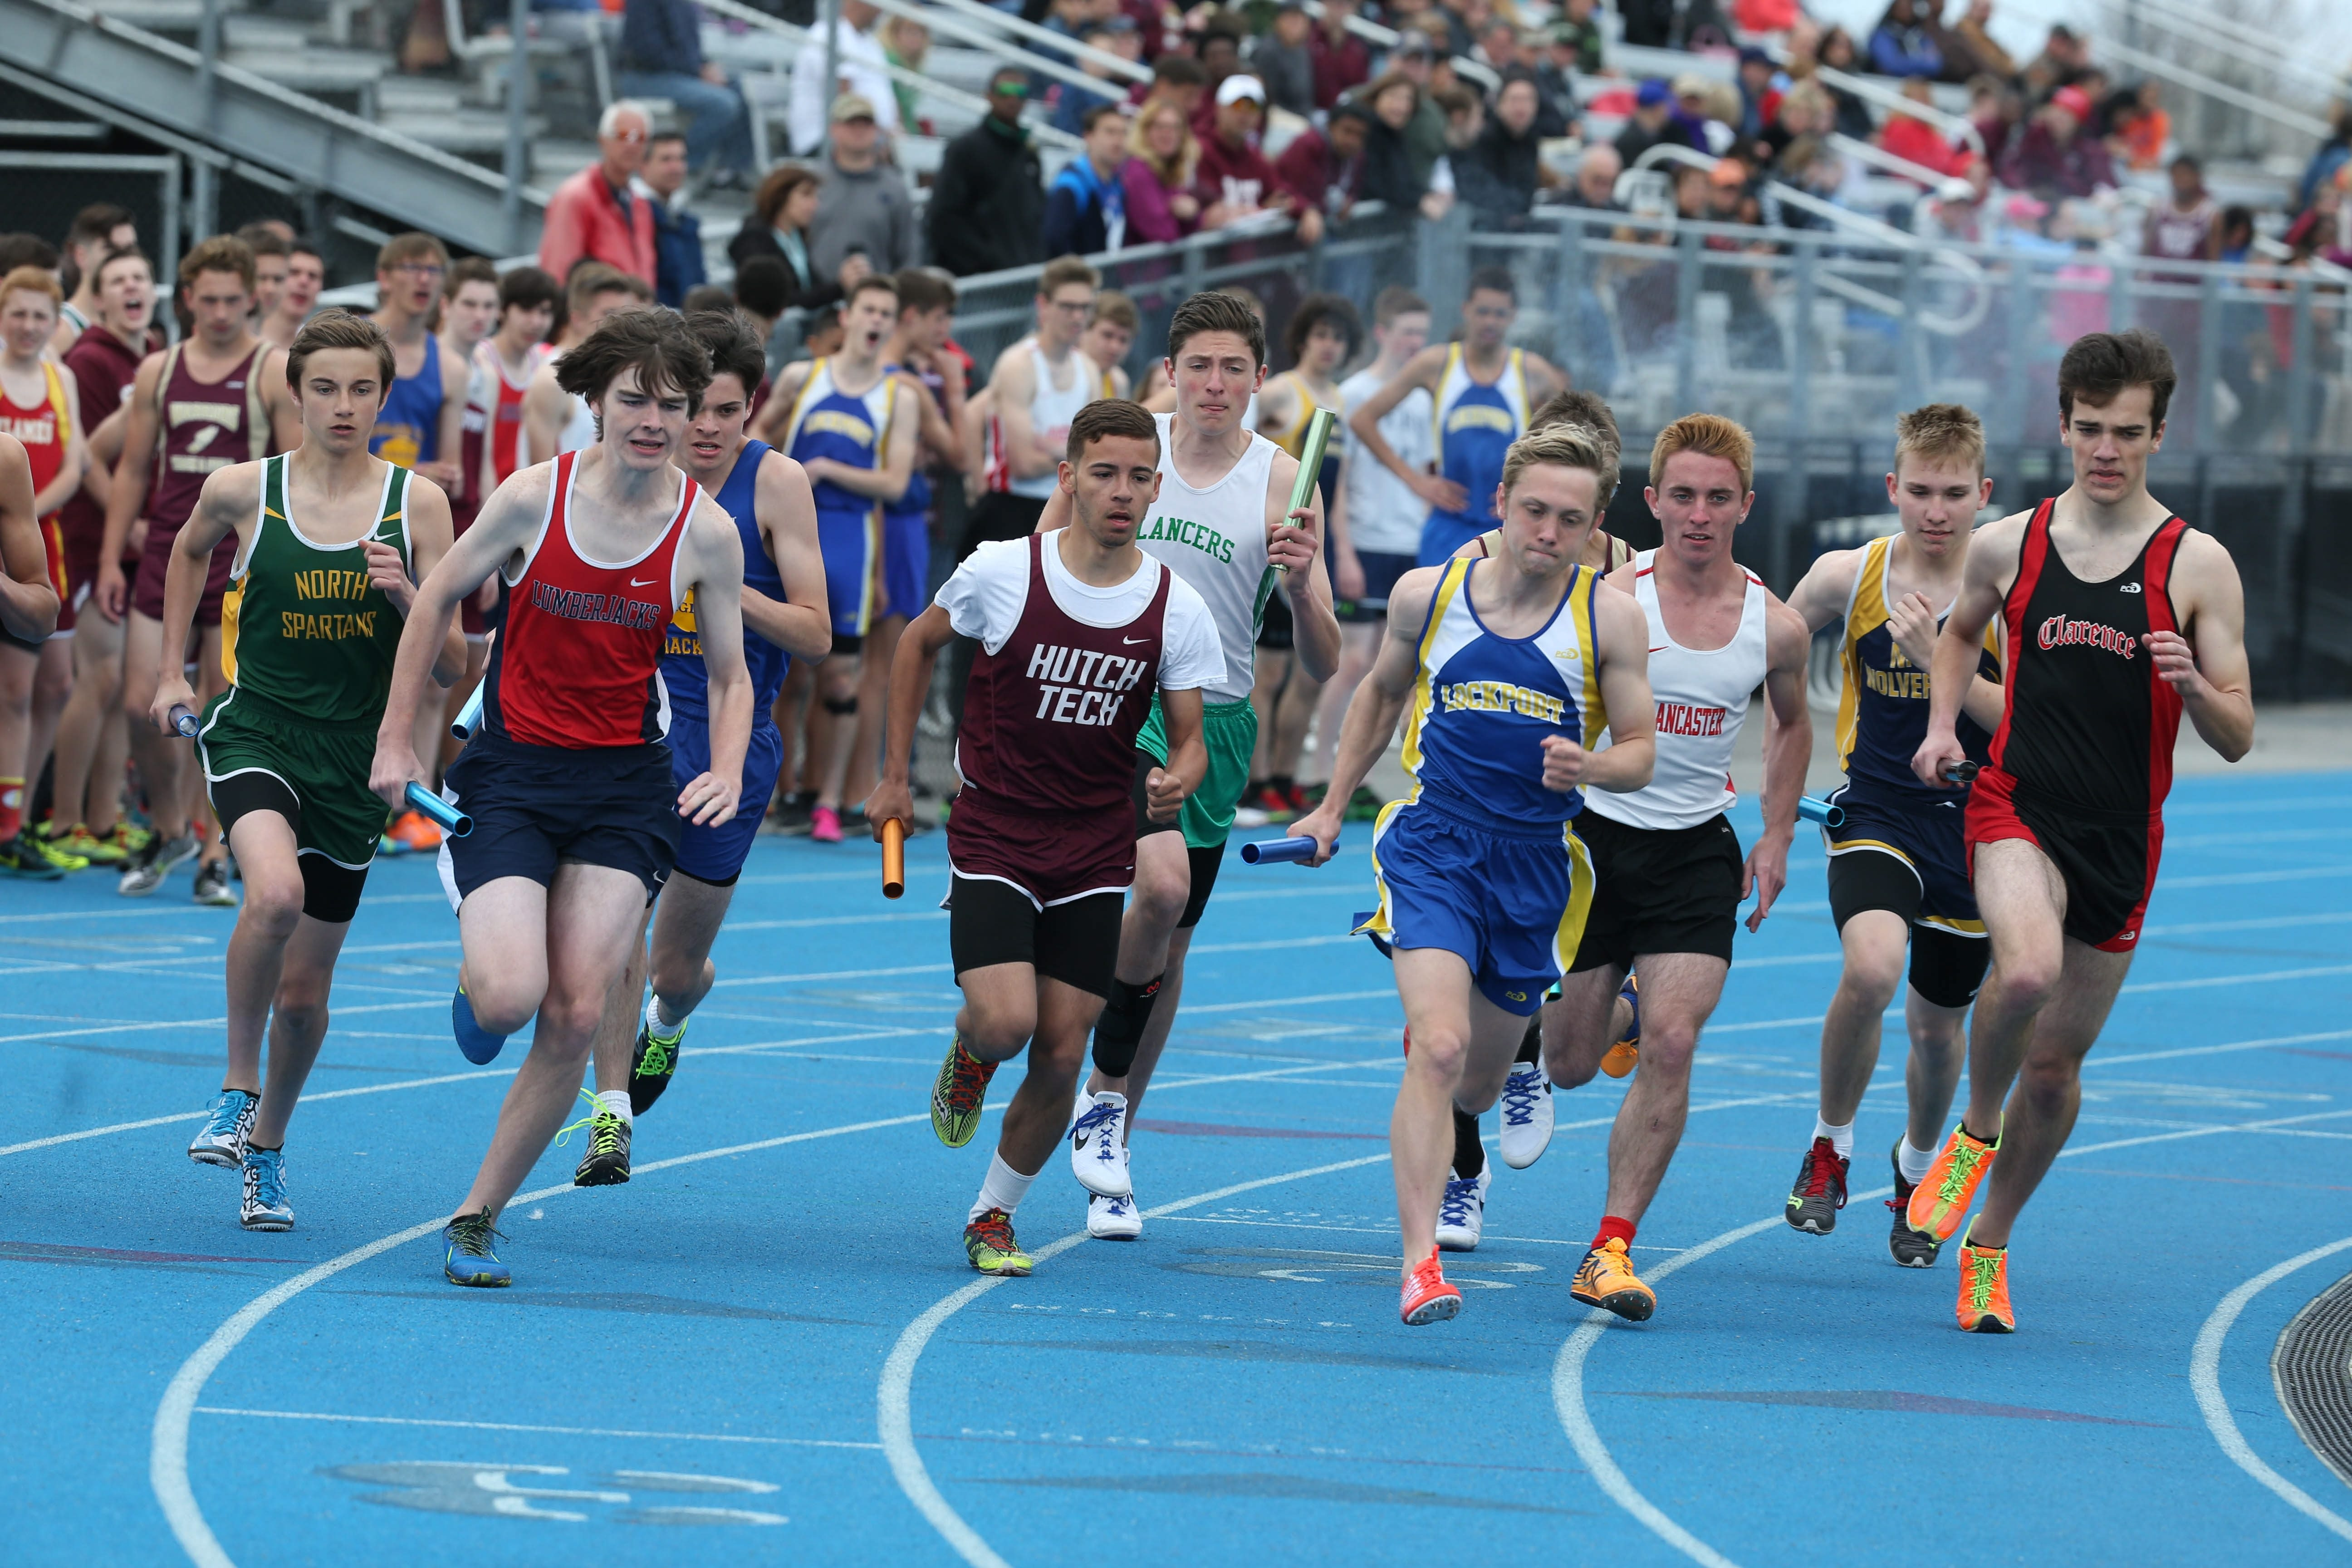 Runners round a turn during action at the Wildcat Relays on Saturday at Depew High School.